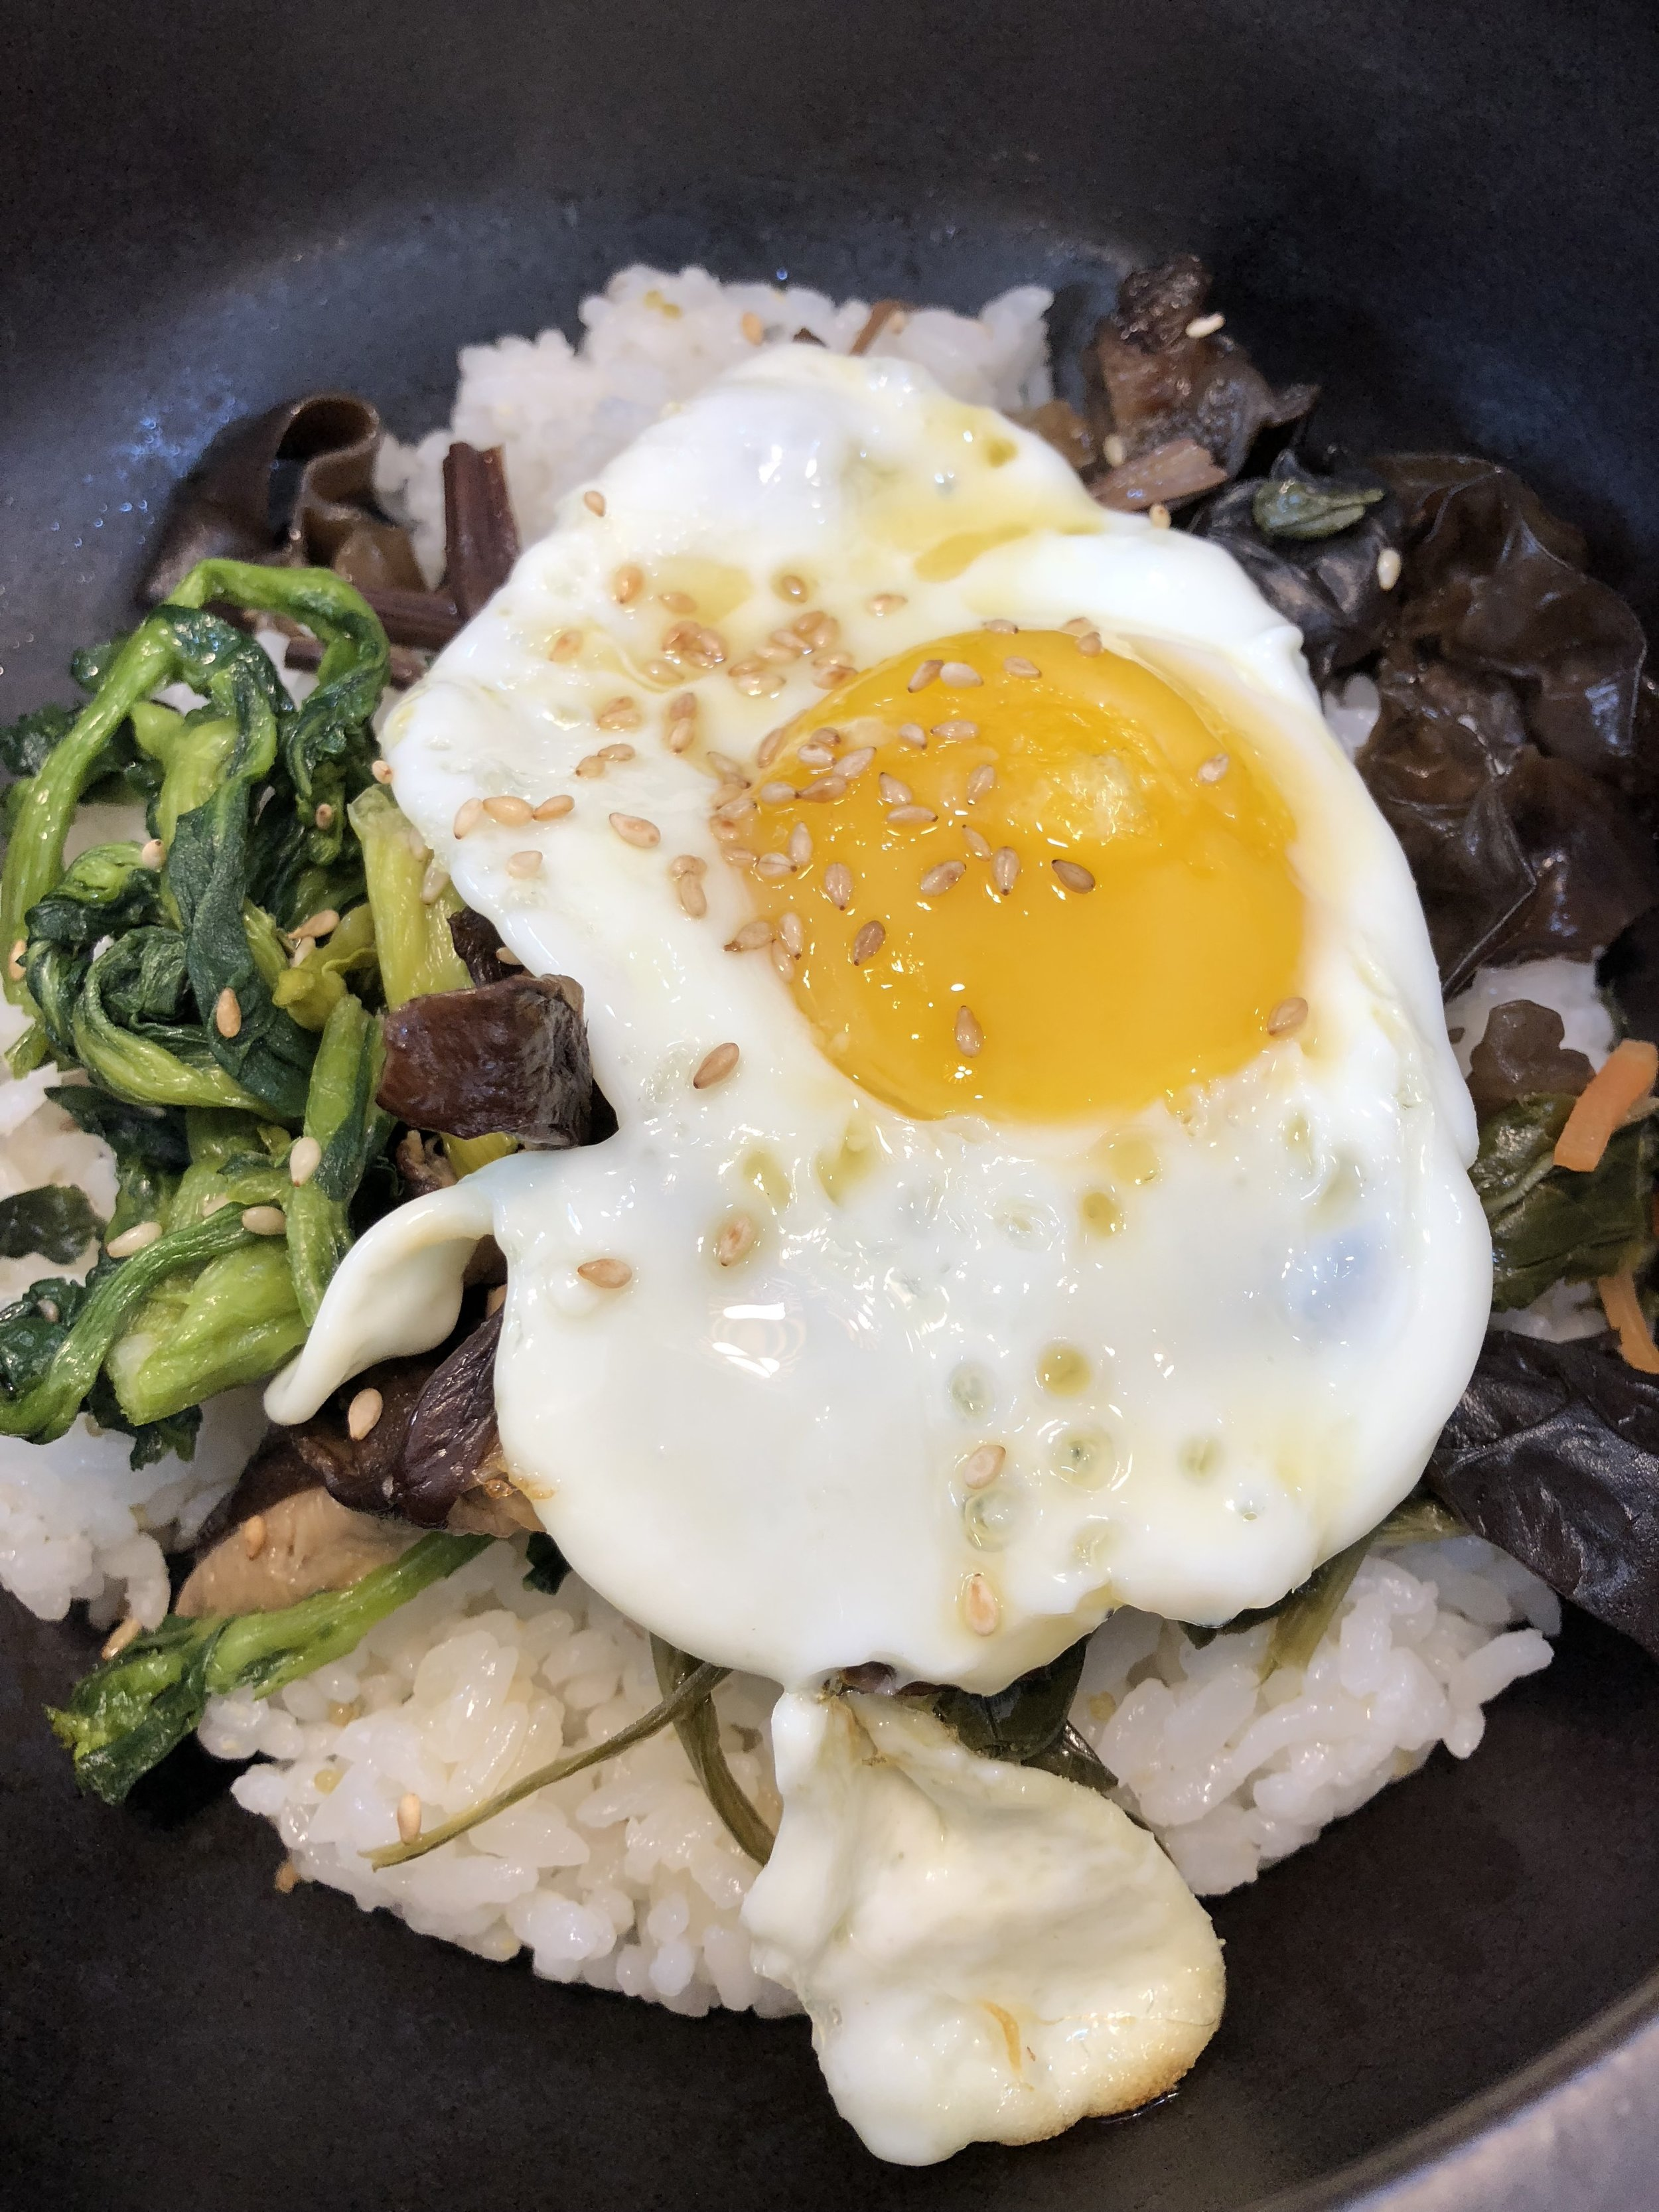 Delicious bibimbap — rice, herbs, egg, and veg served in a sizzling hot bowl. Mix with red pepper paste and enjoy!